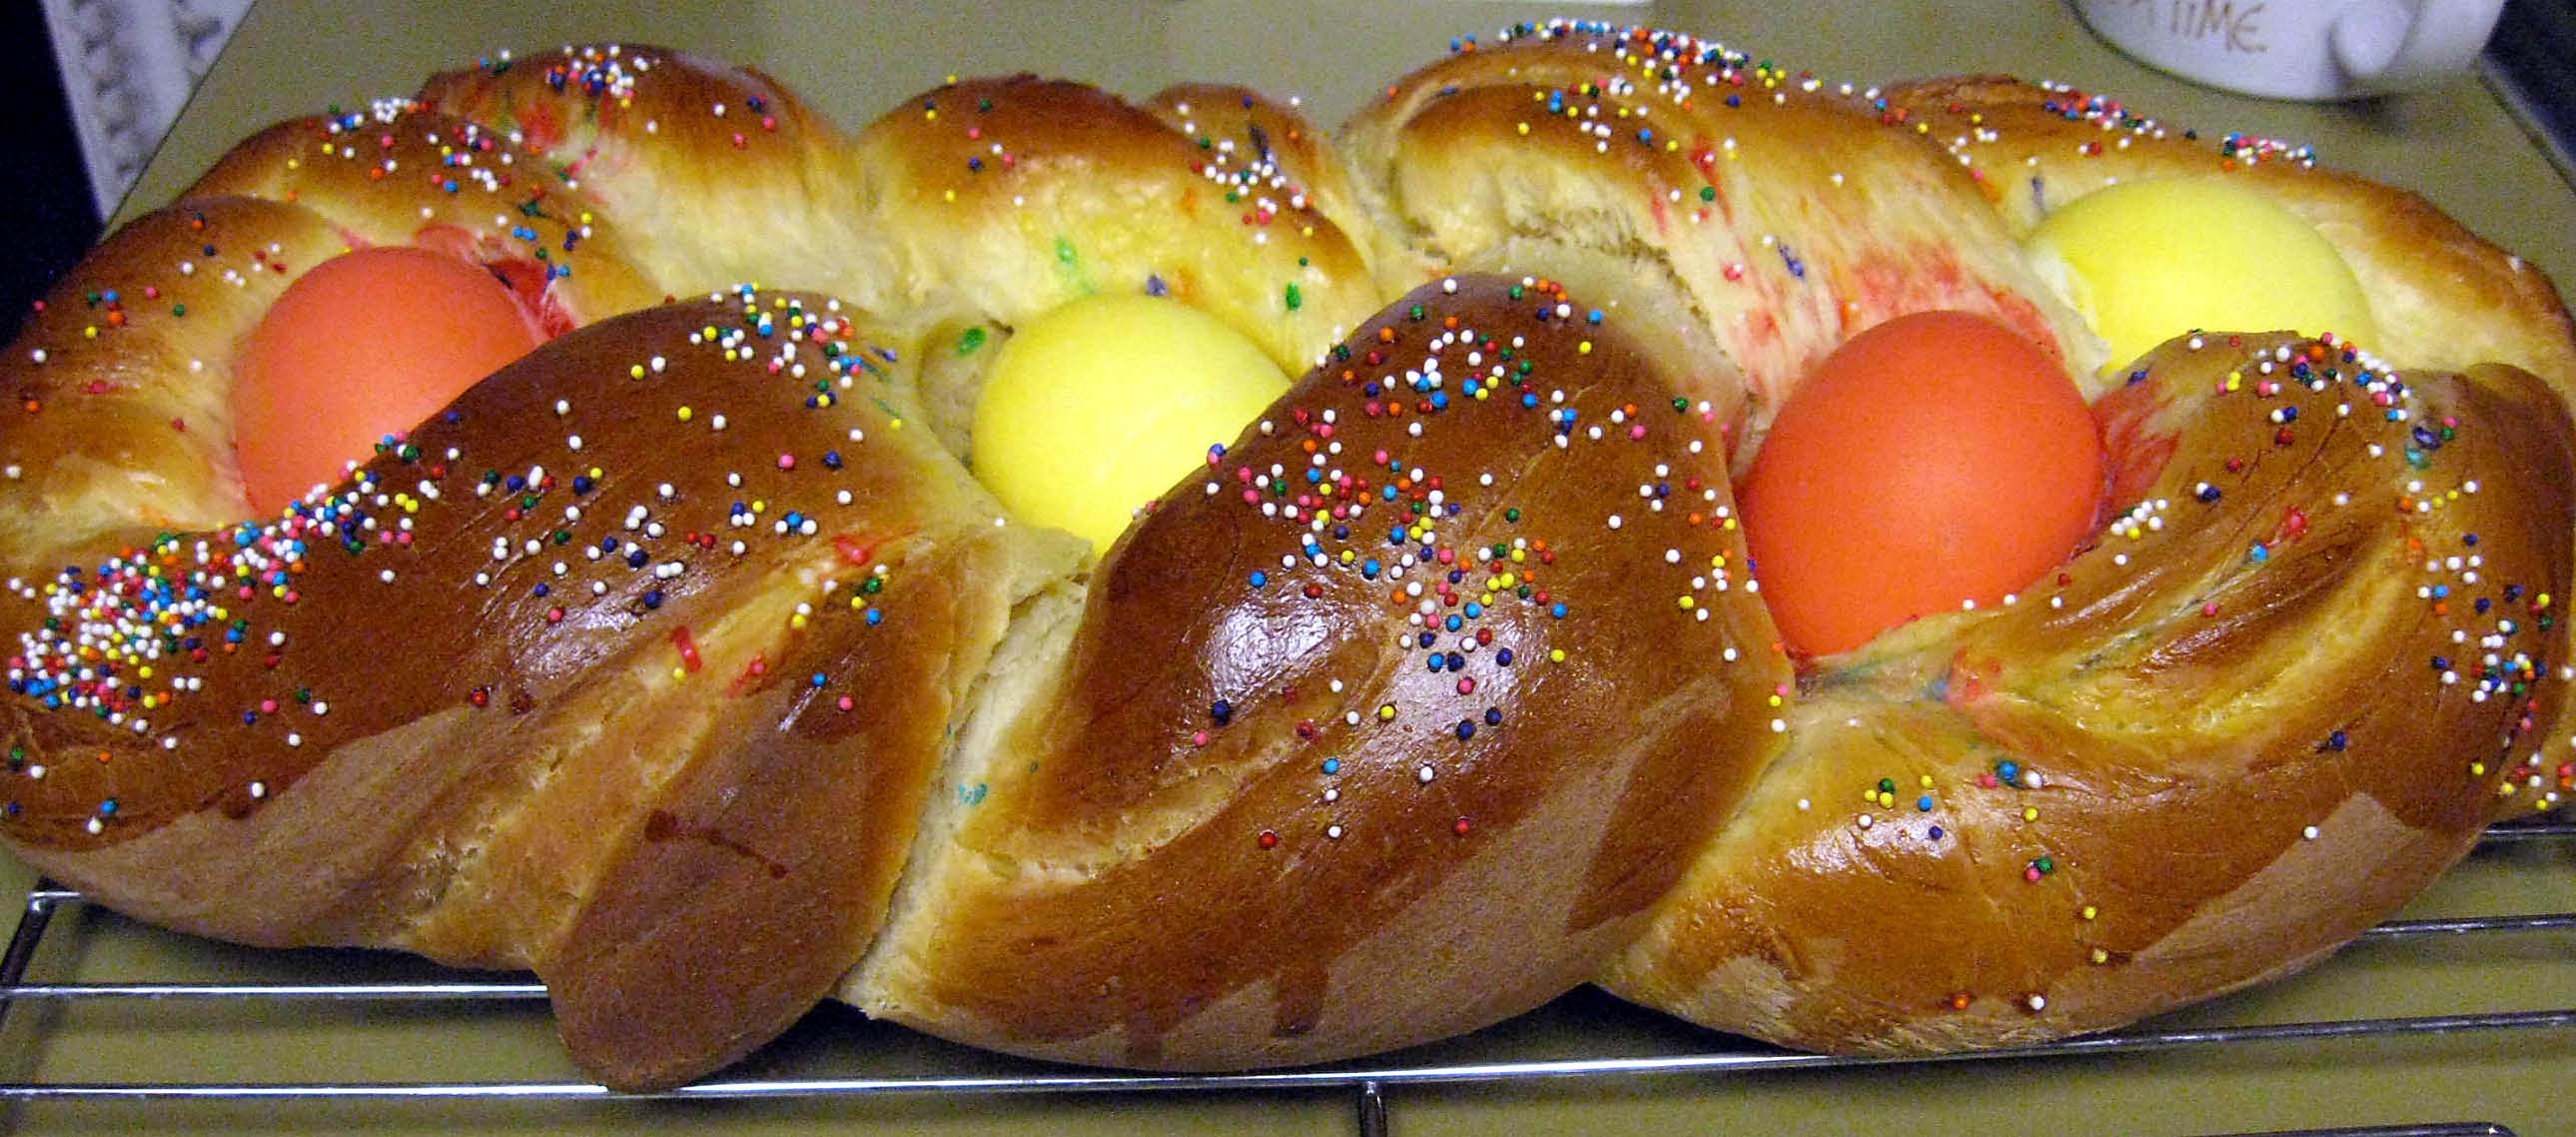 Italian Easter Bread Delicious With A Cup Of Black Tea